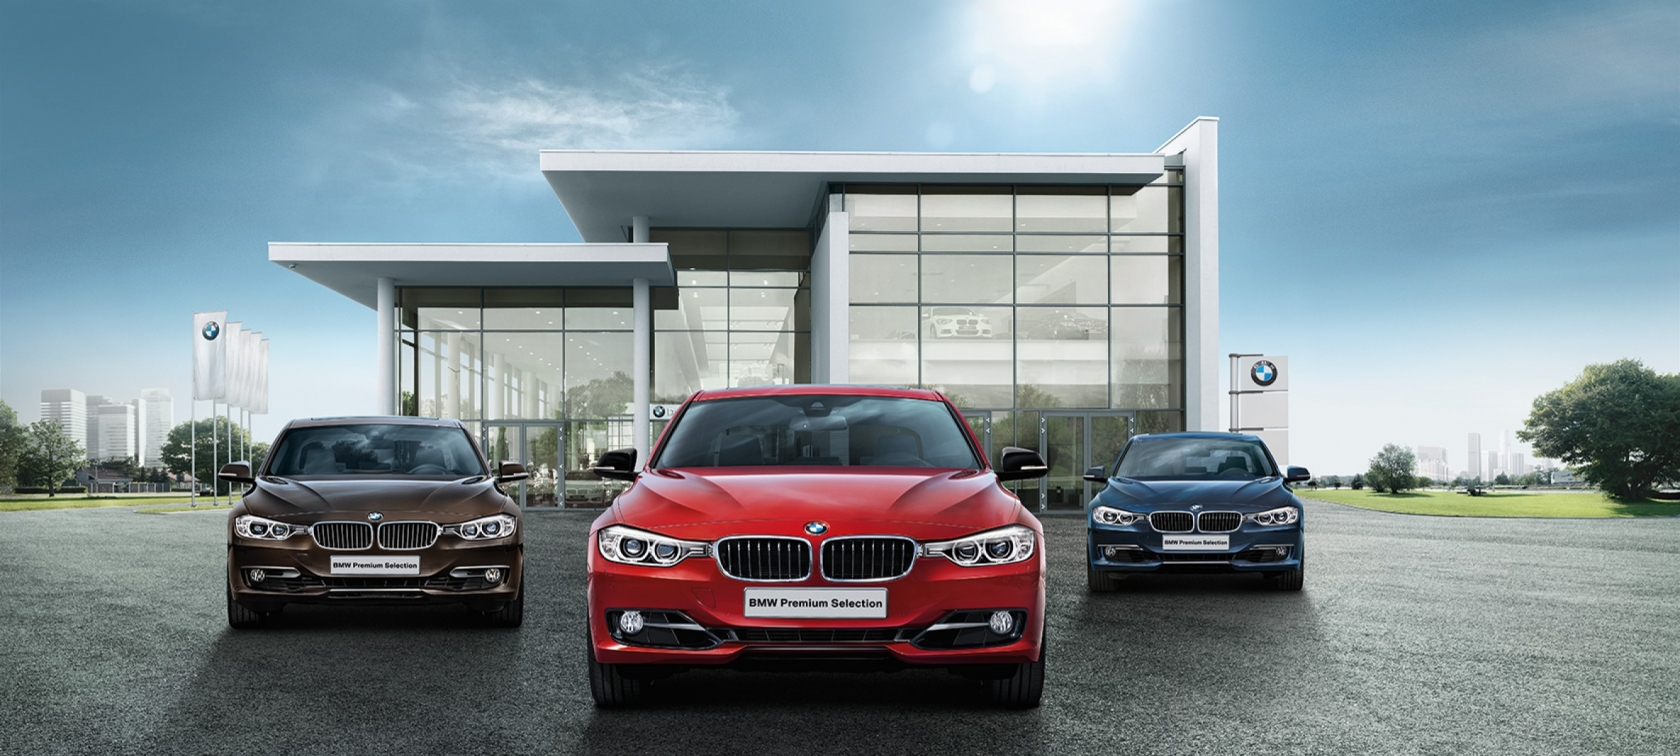 BMW PREMIUM SELECTION ET OCCASIONS.